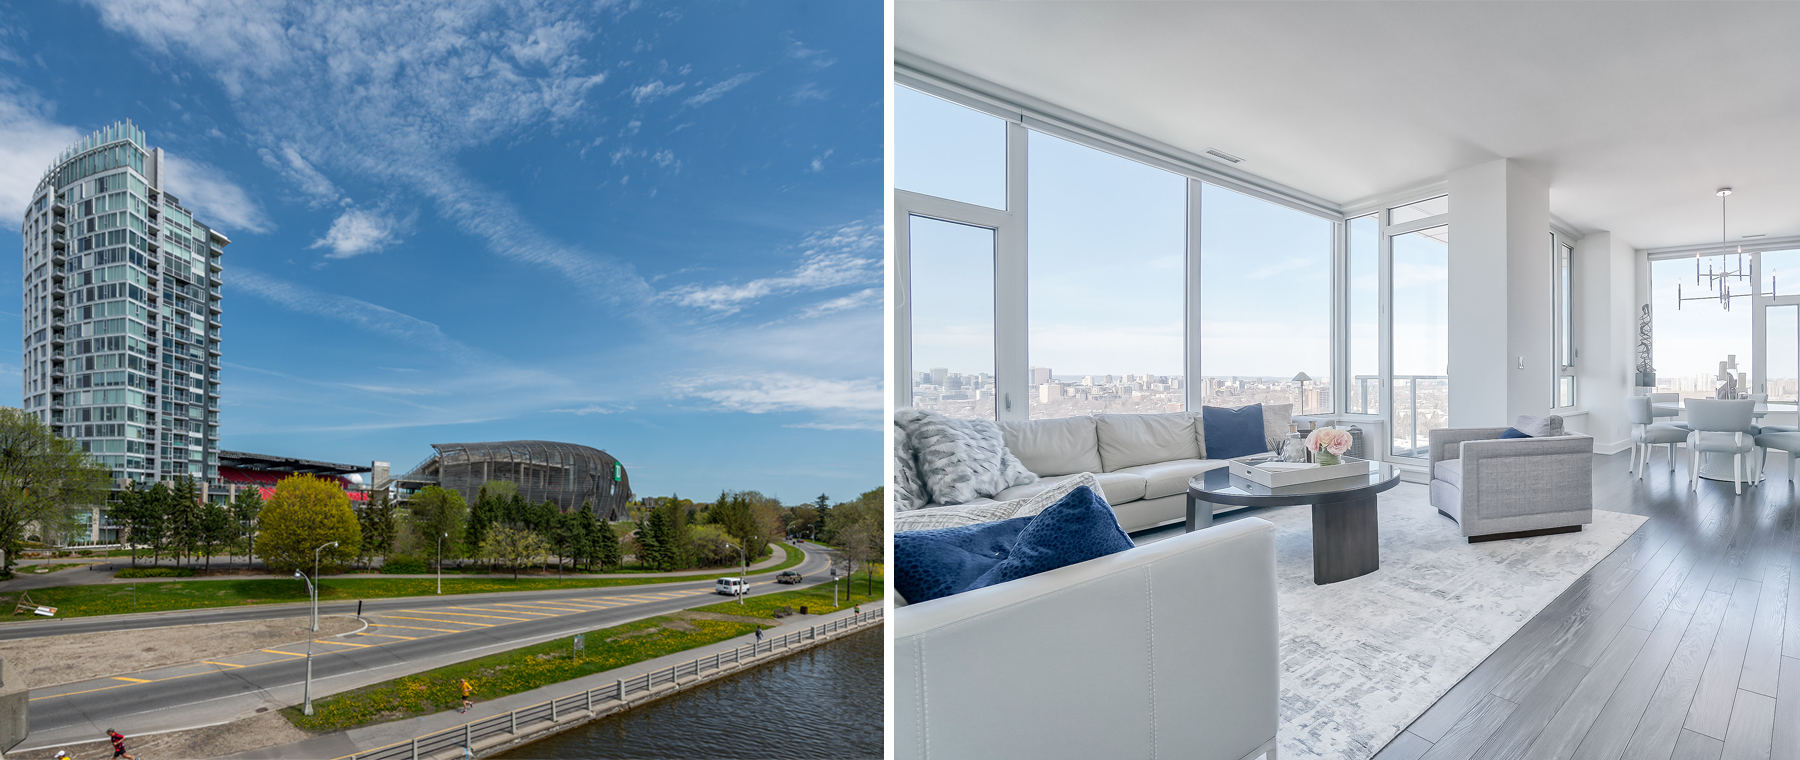 Condo of the Week: $2 million for a penthouse overlooking Lansdowne Park